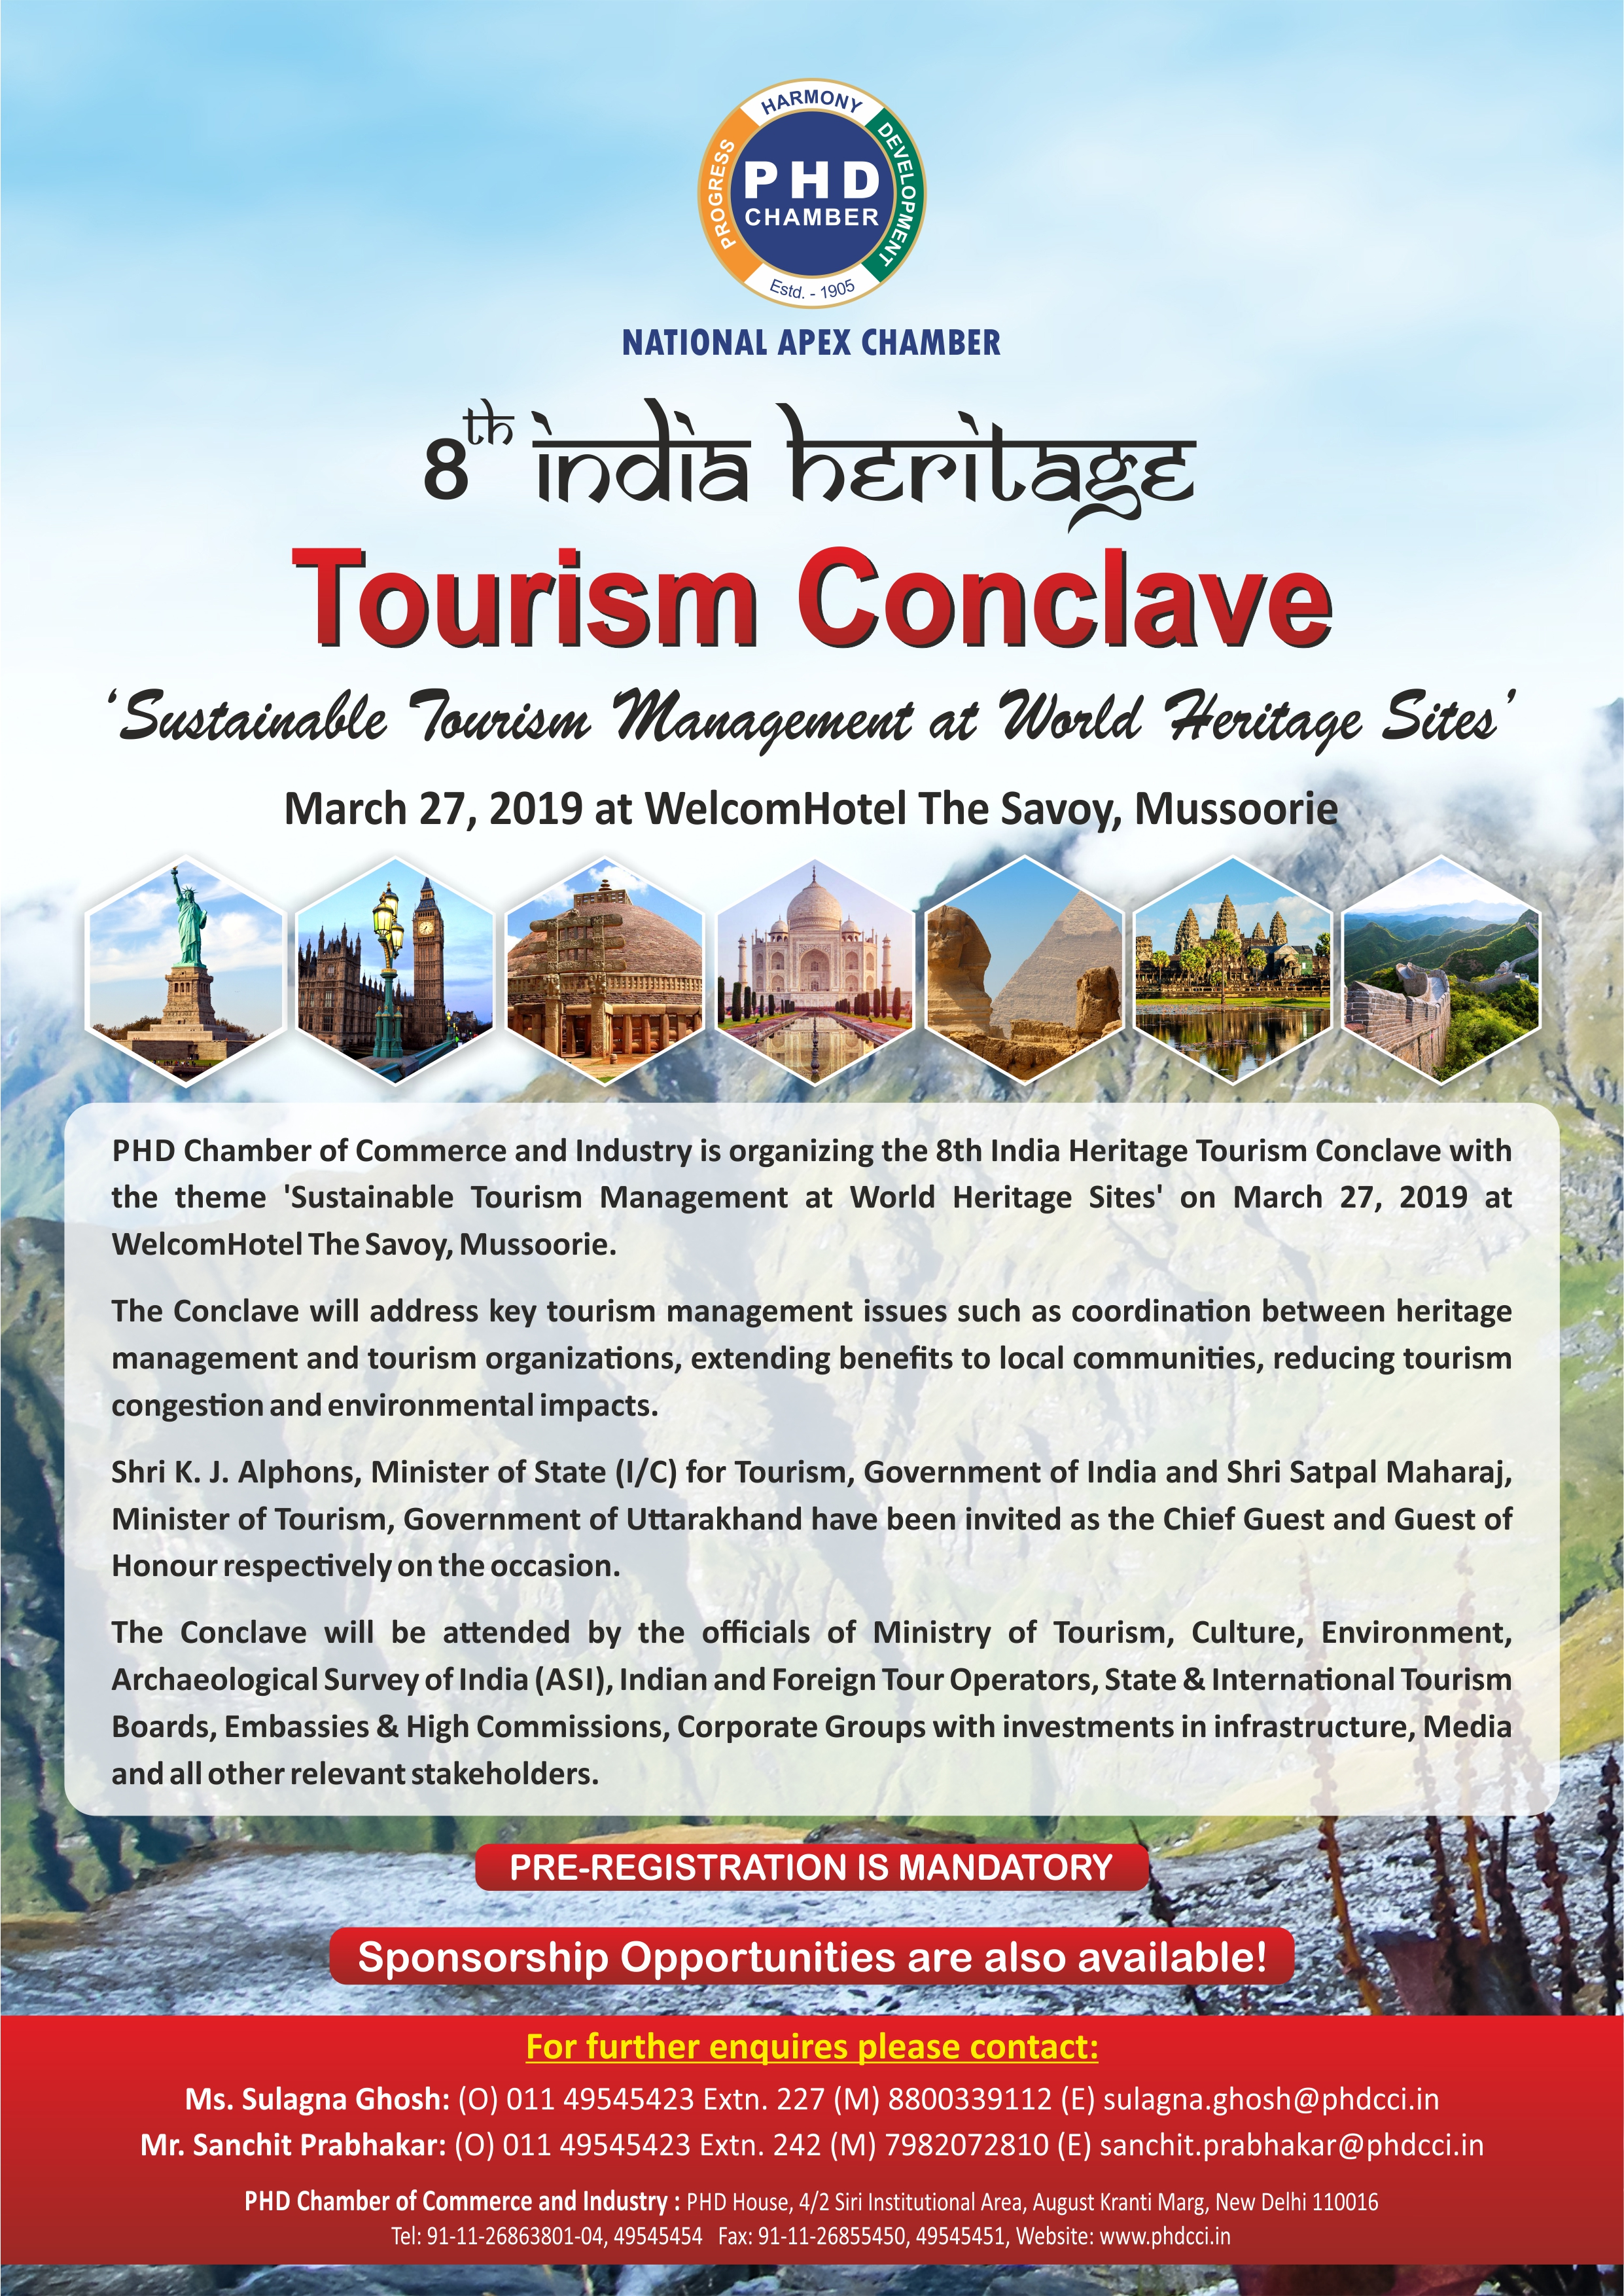 8TH INDIA HERITAGE TOURISM CONCLAVE – Sustainable Tourism Management at World Heritage Sites